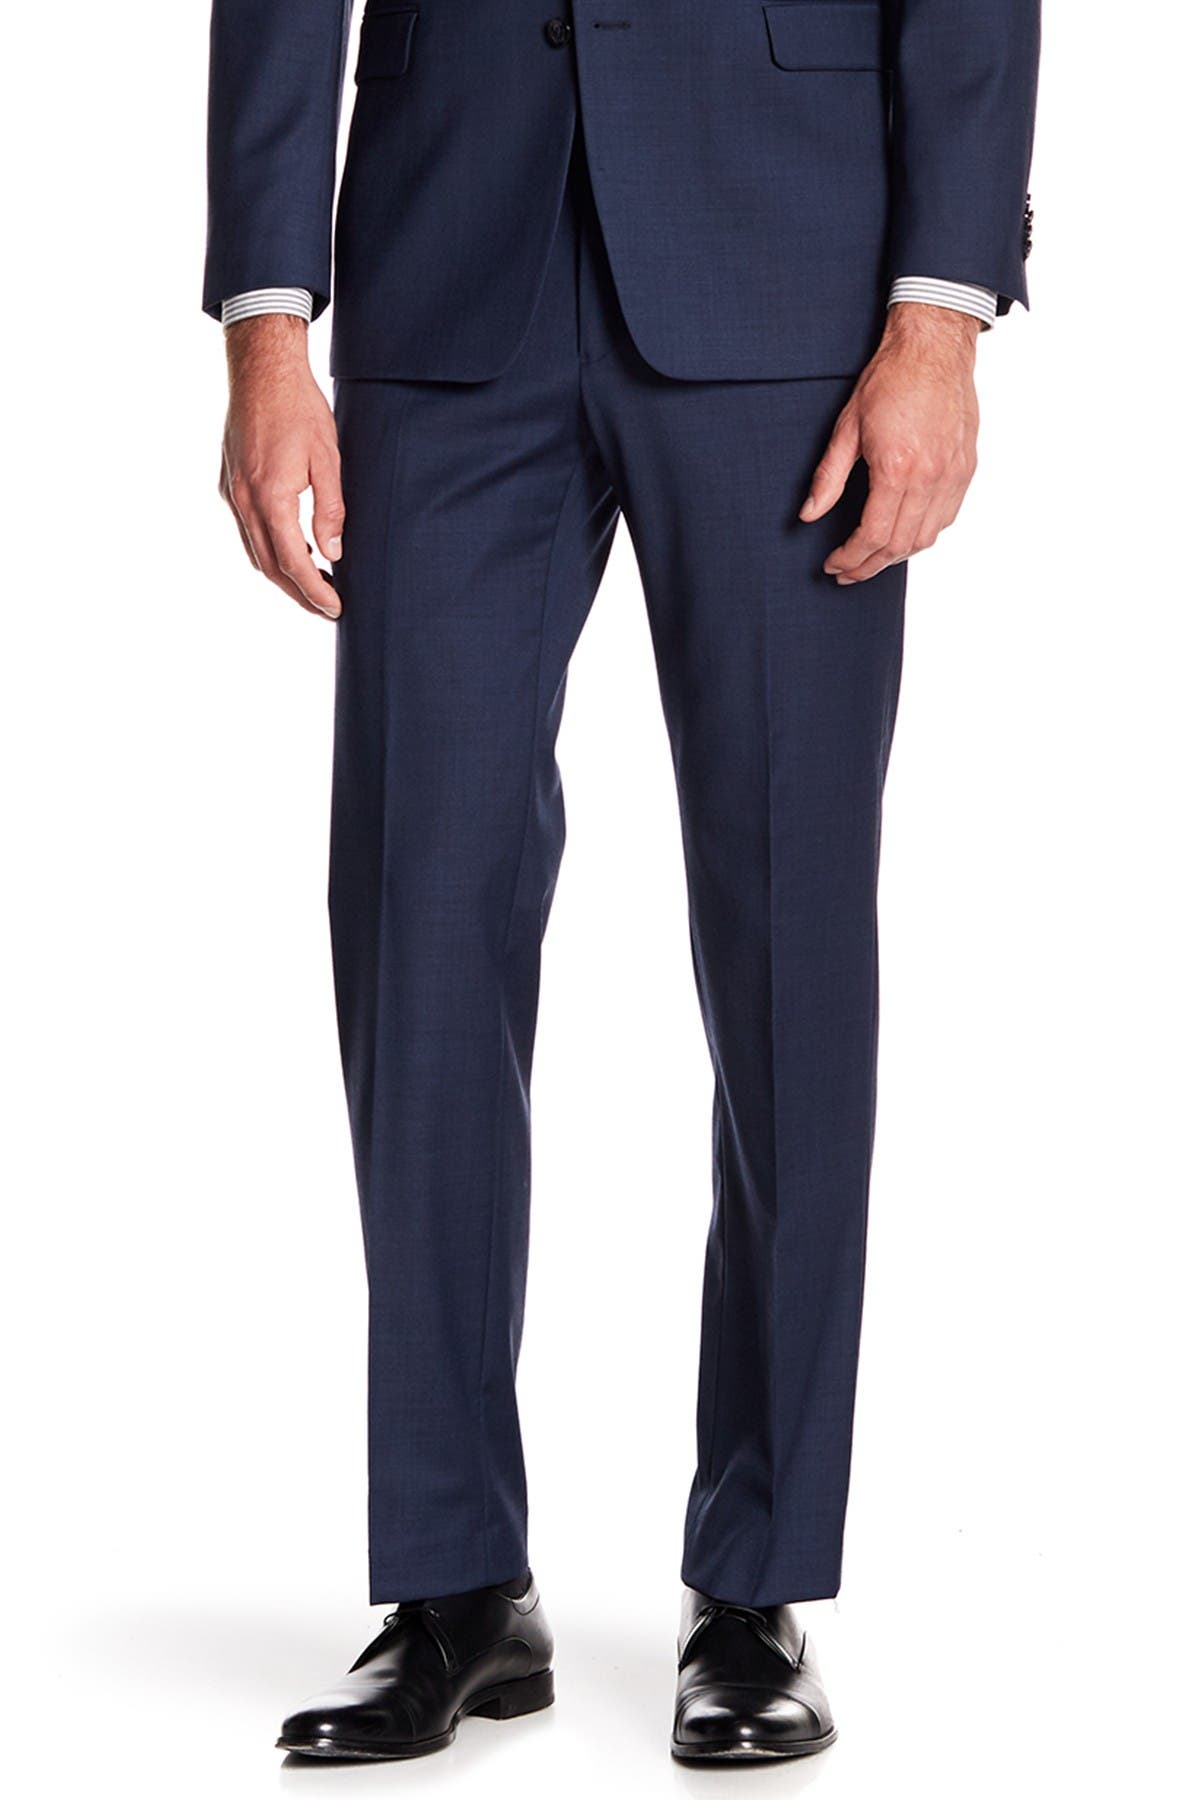 """Image of Tommy Hilfiger Tyler Modern Fit TH Flex Performance Sharkskin Suit Separate Pant - 30-34"""" Inseam"""